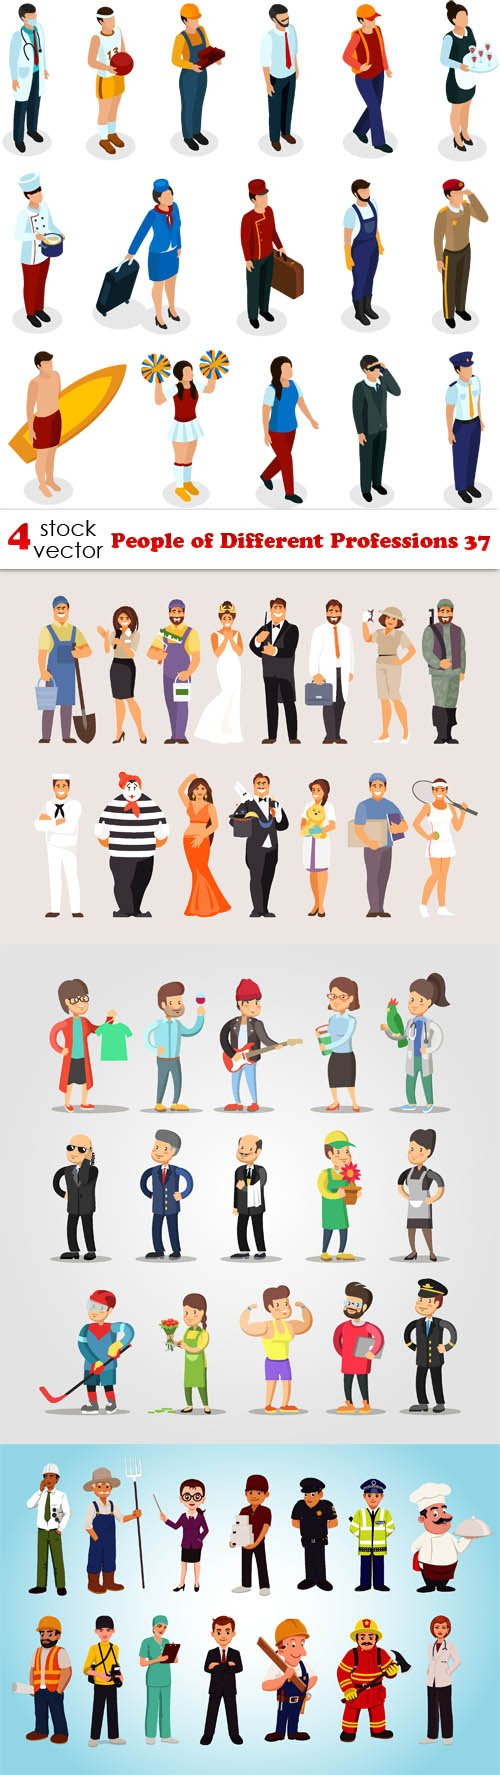 Vectors - People of Different Professions 37